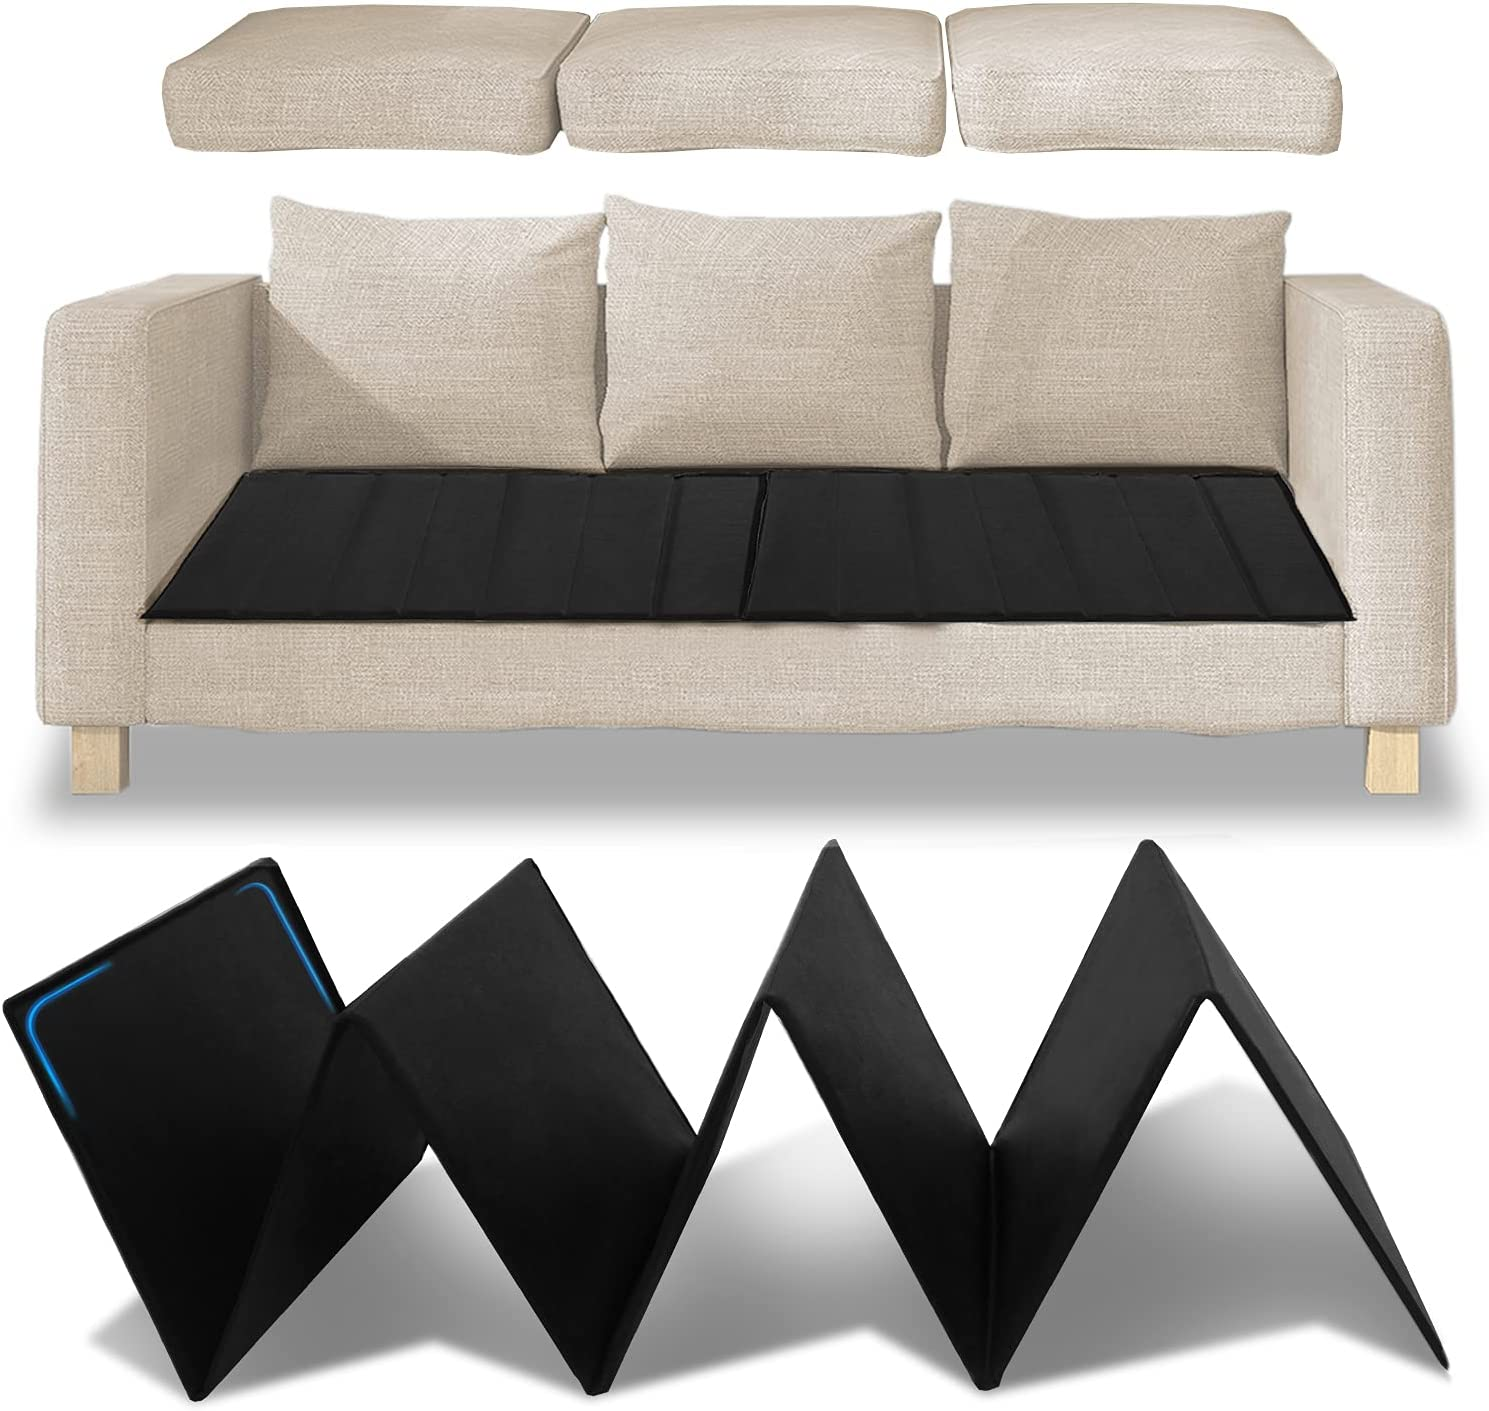 """HomeProtect Sofa Cushion Support Board for Sagging Cushions, Extra Thick PP Board Under Couch Cushion Replacement, Foldable Furniture Fix Seat Saver 66""""x17"""", Extend The Life of Sofa"""